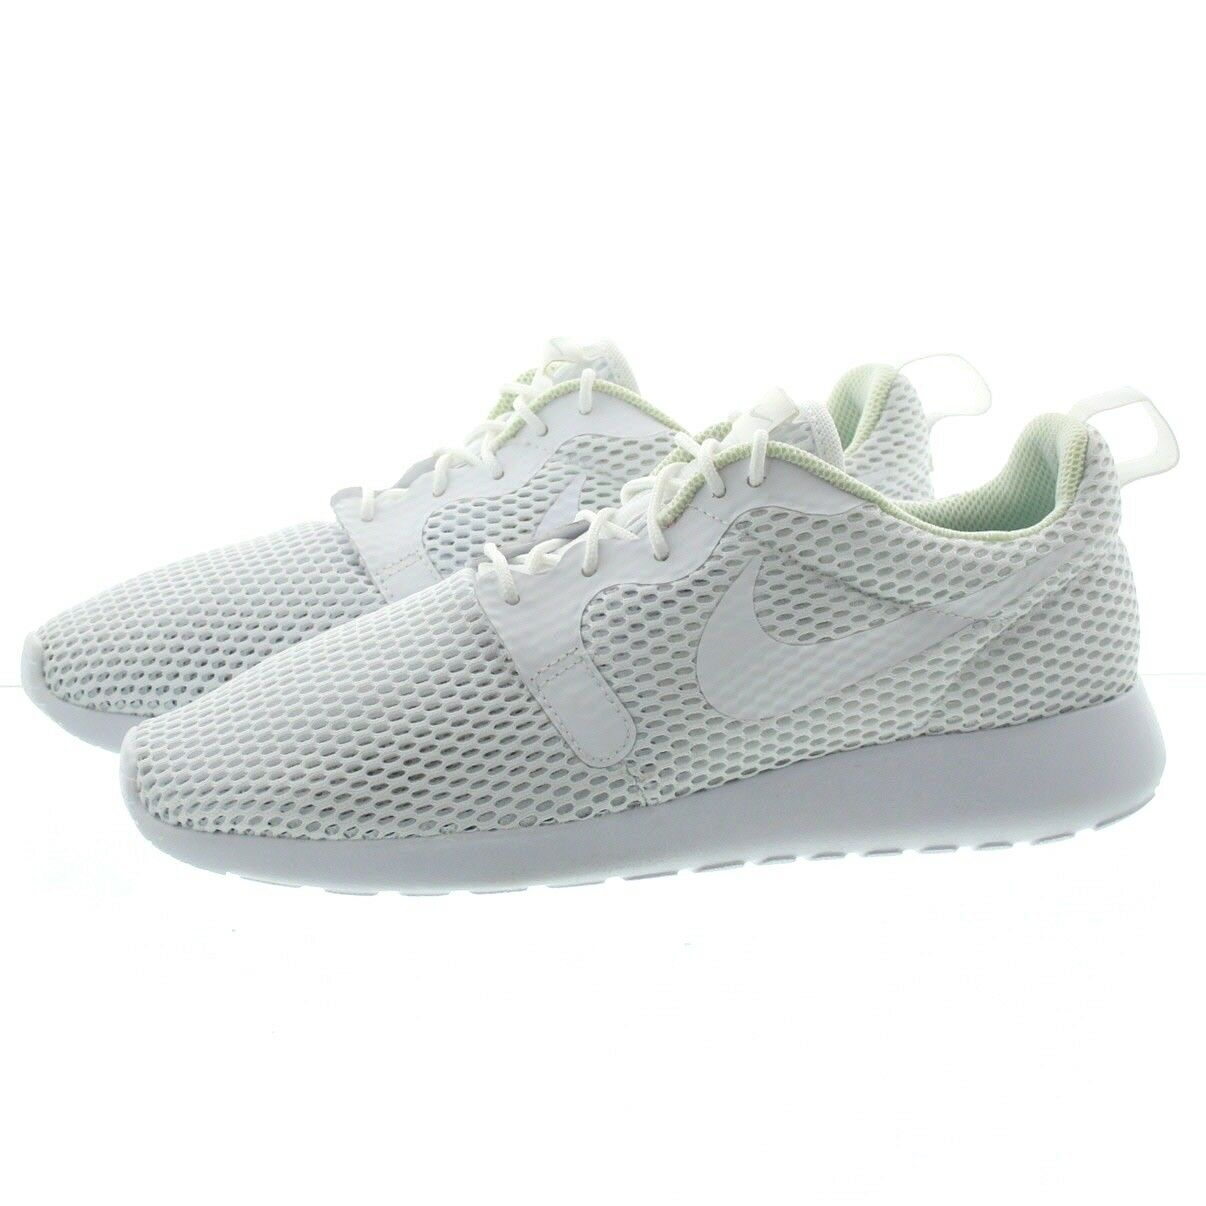 Nike 833826 100 Womens Roshe One Hyperfuse BR Running shoes Sneakers